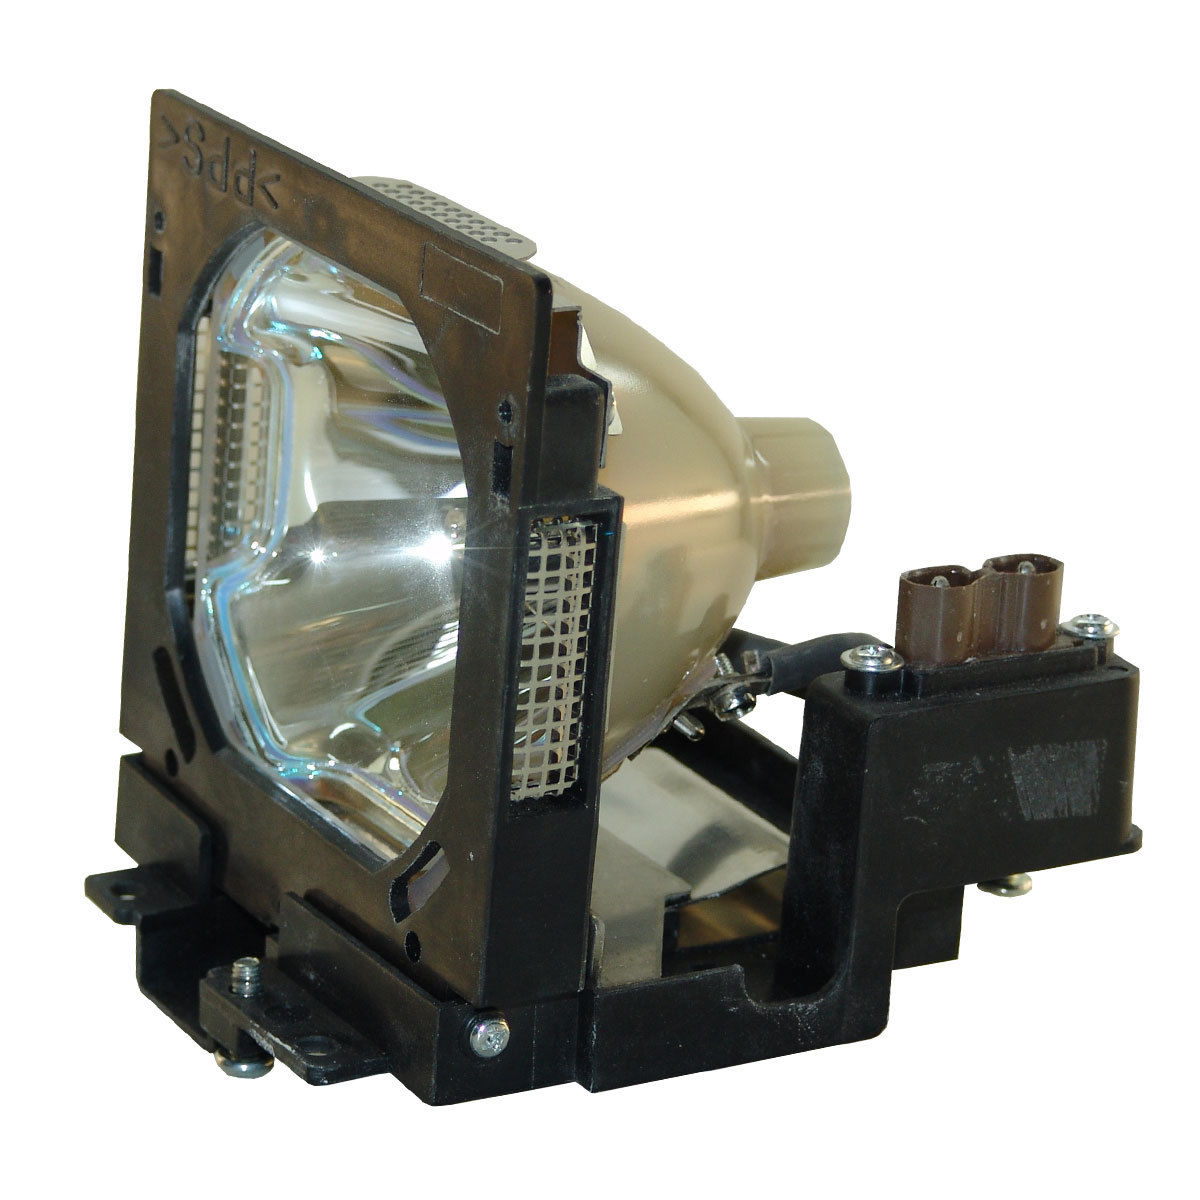 Projector Lamp Bulb POA-LMP73 POALMP73 LMP73 610-309-3802 for SANYO PLV-WF10 with housing lamp housing for sanyo 610 3252957 6103252957 projector dlp lcd bulb